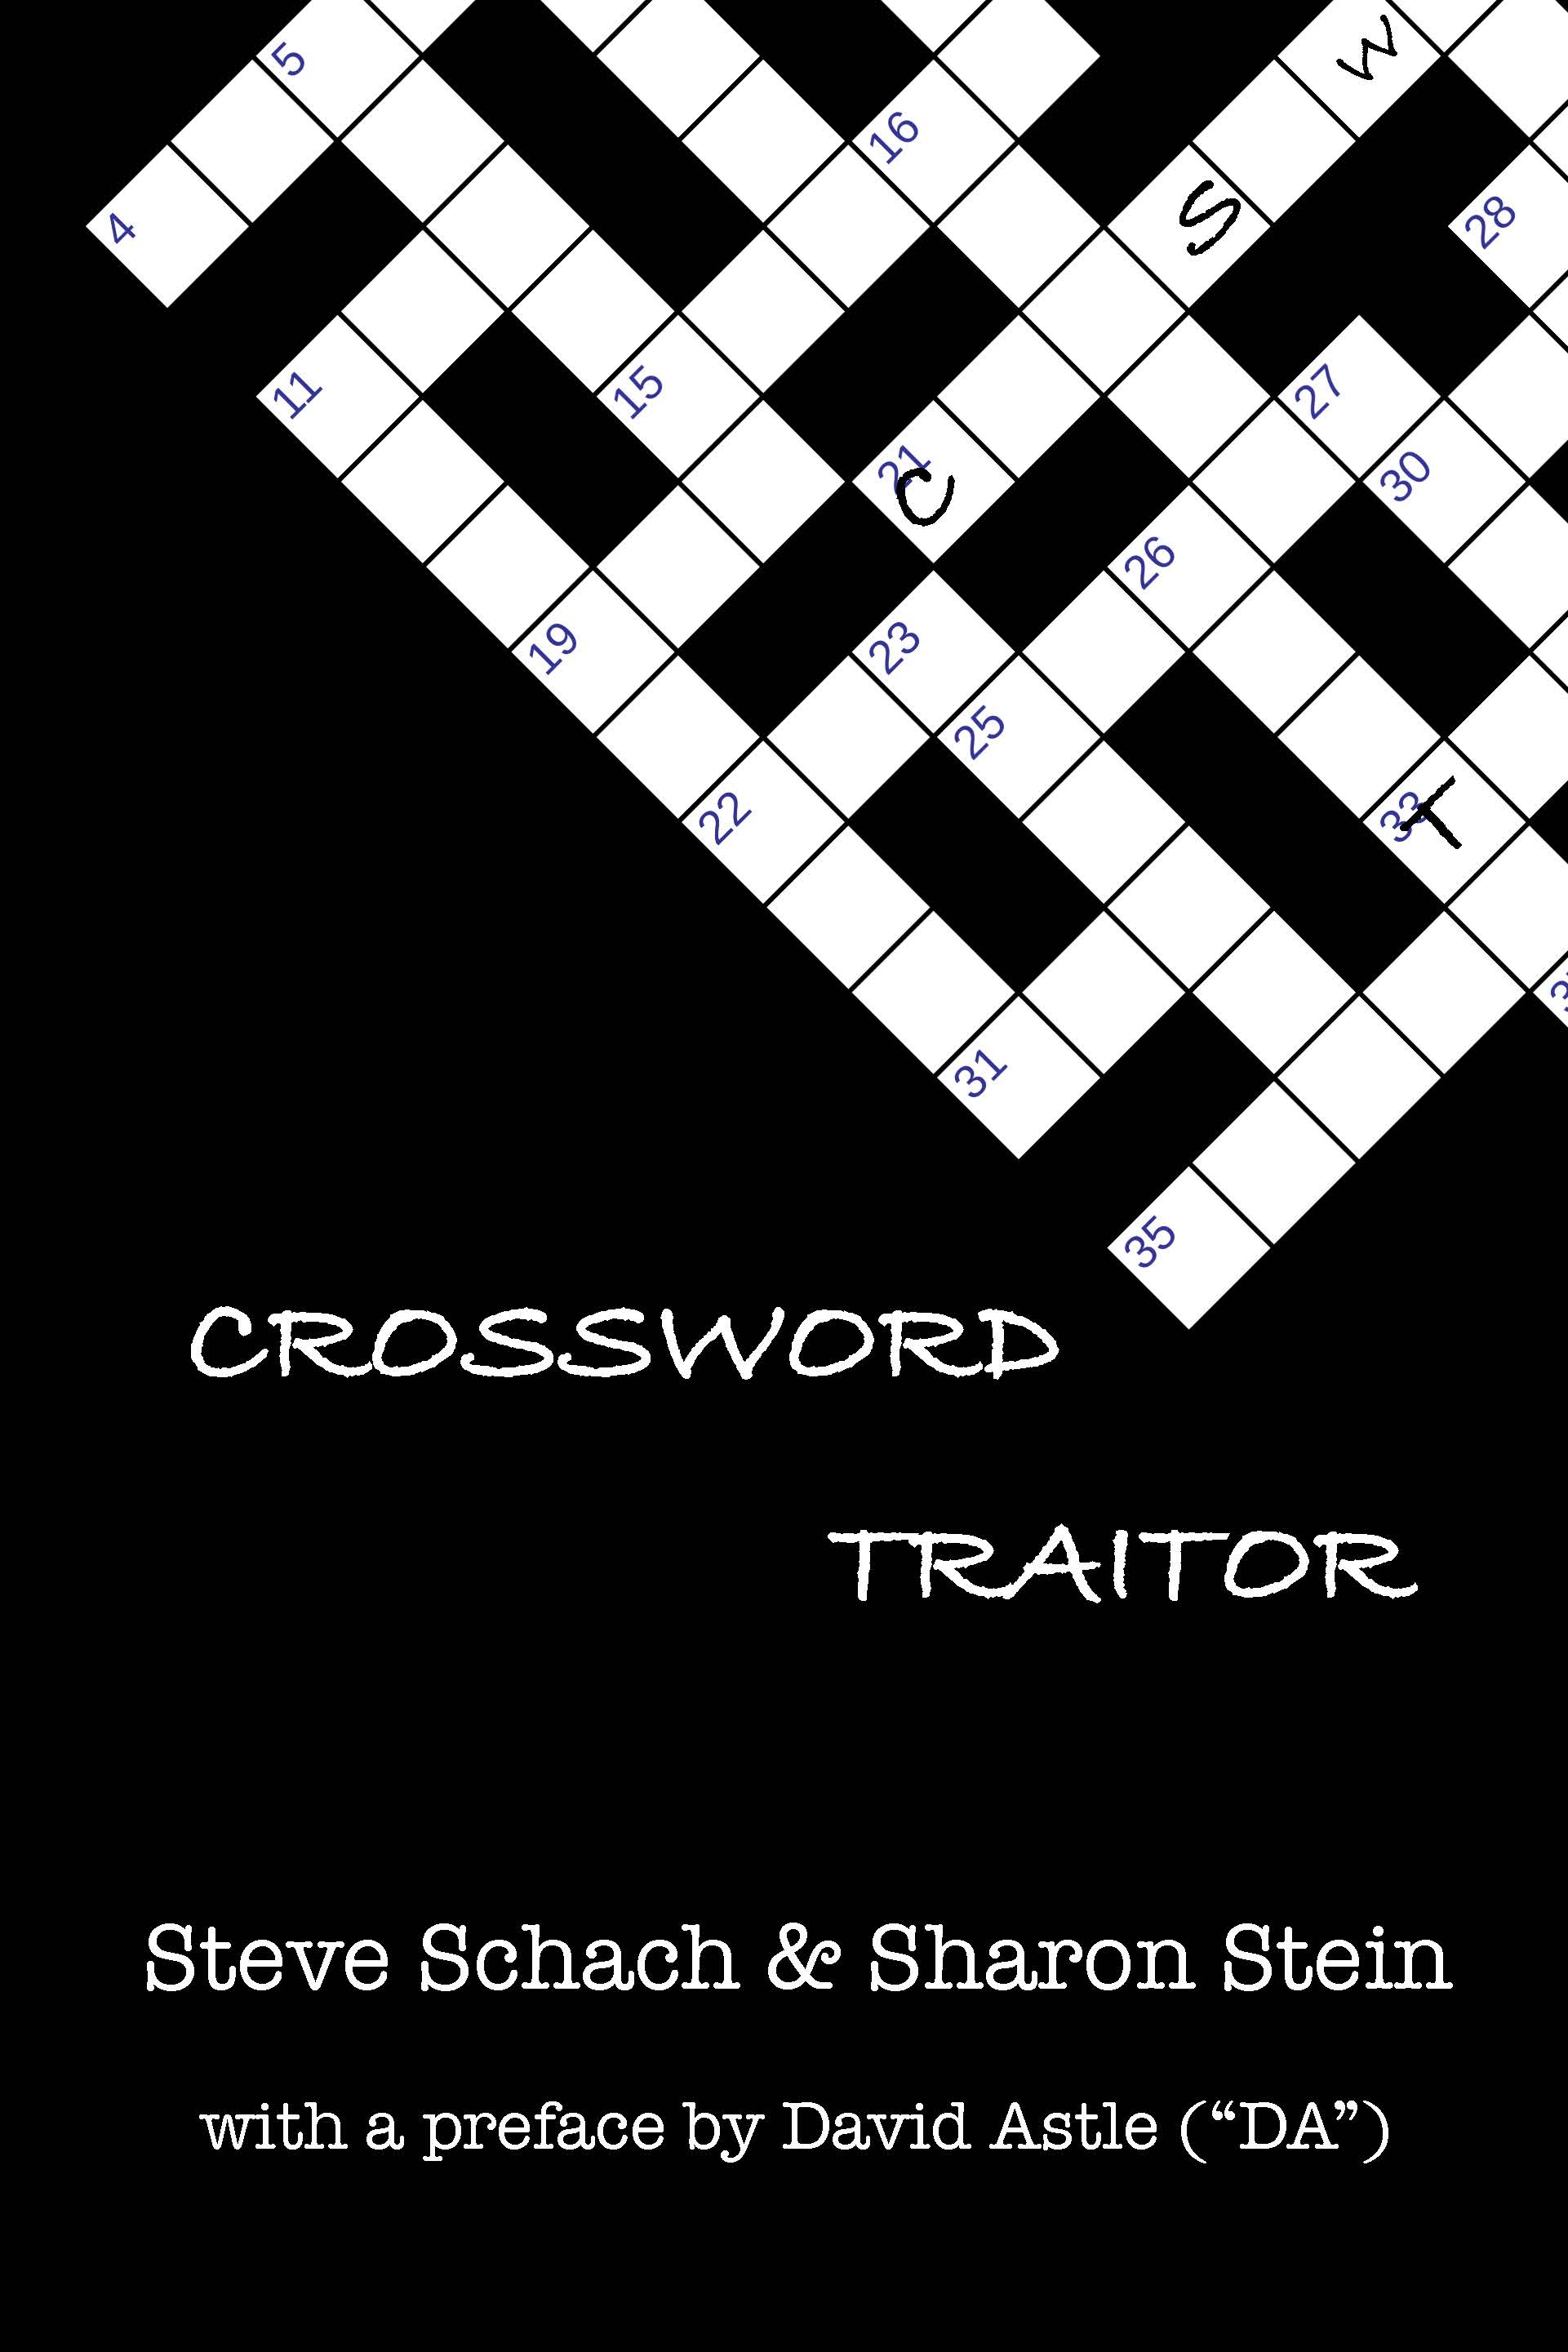 Crossword Traitor ebook COVER.jpg